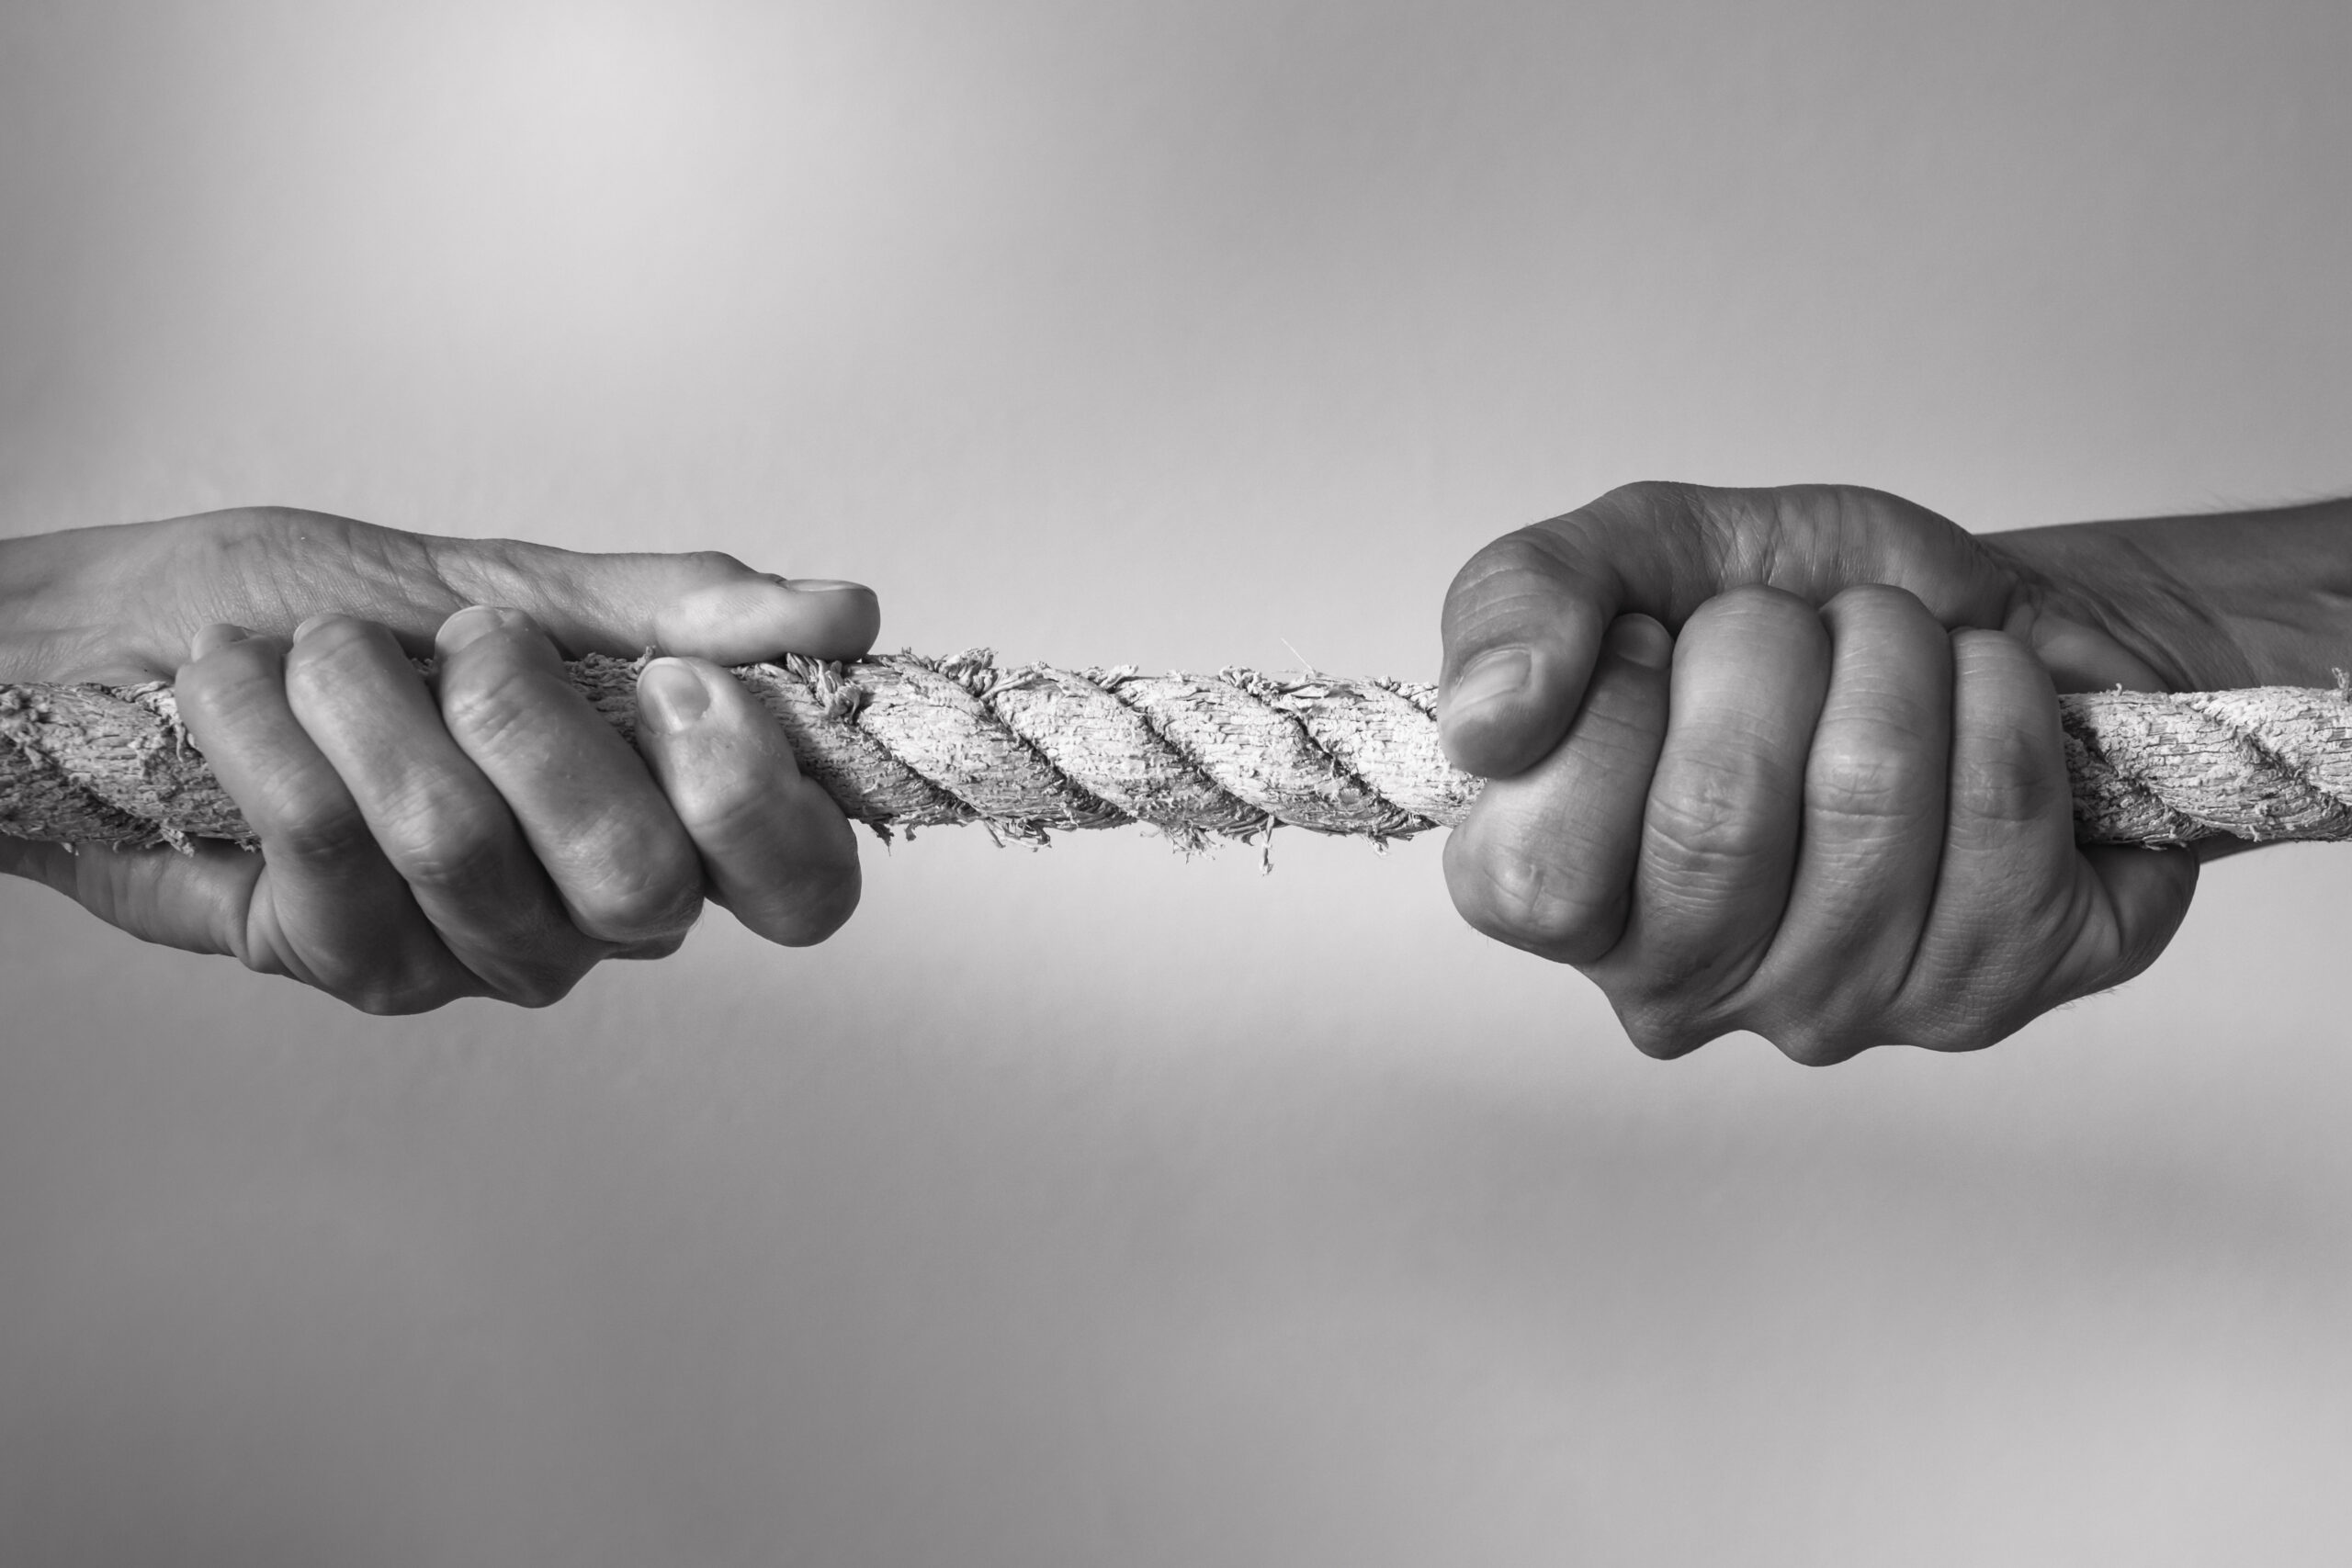 rope_challenge_hands_bw